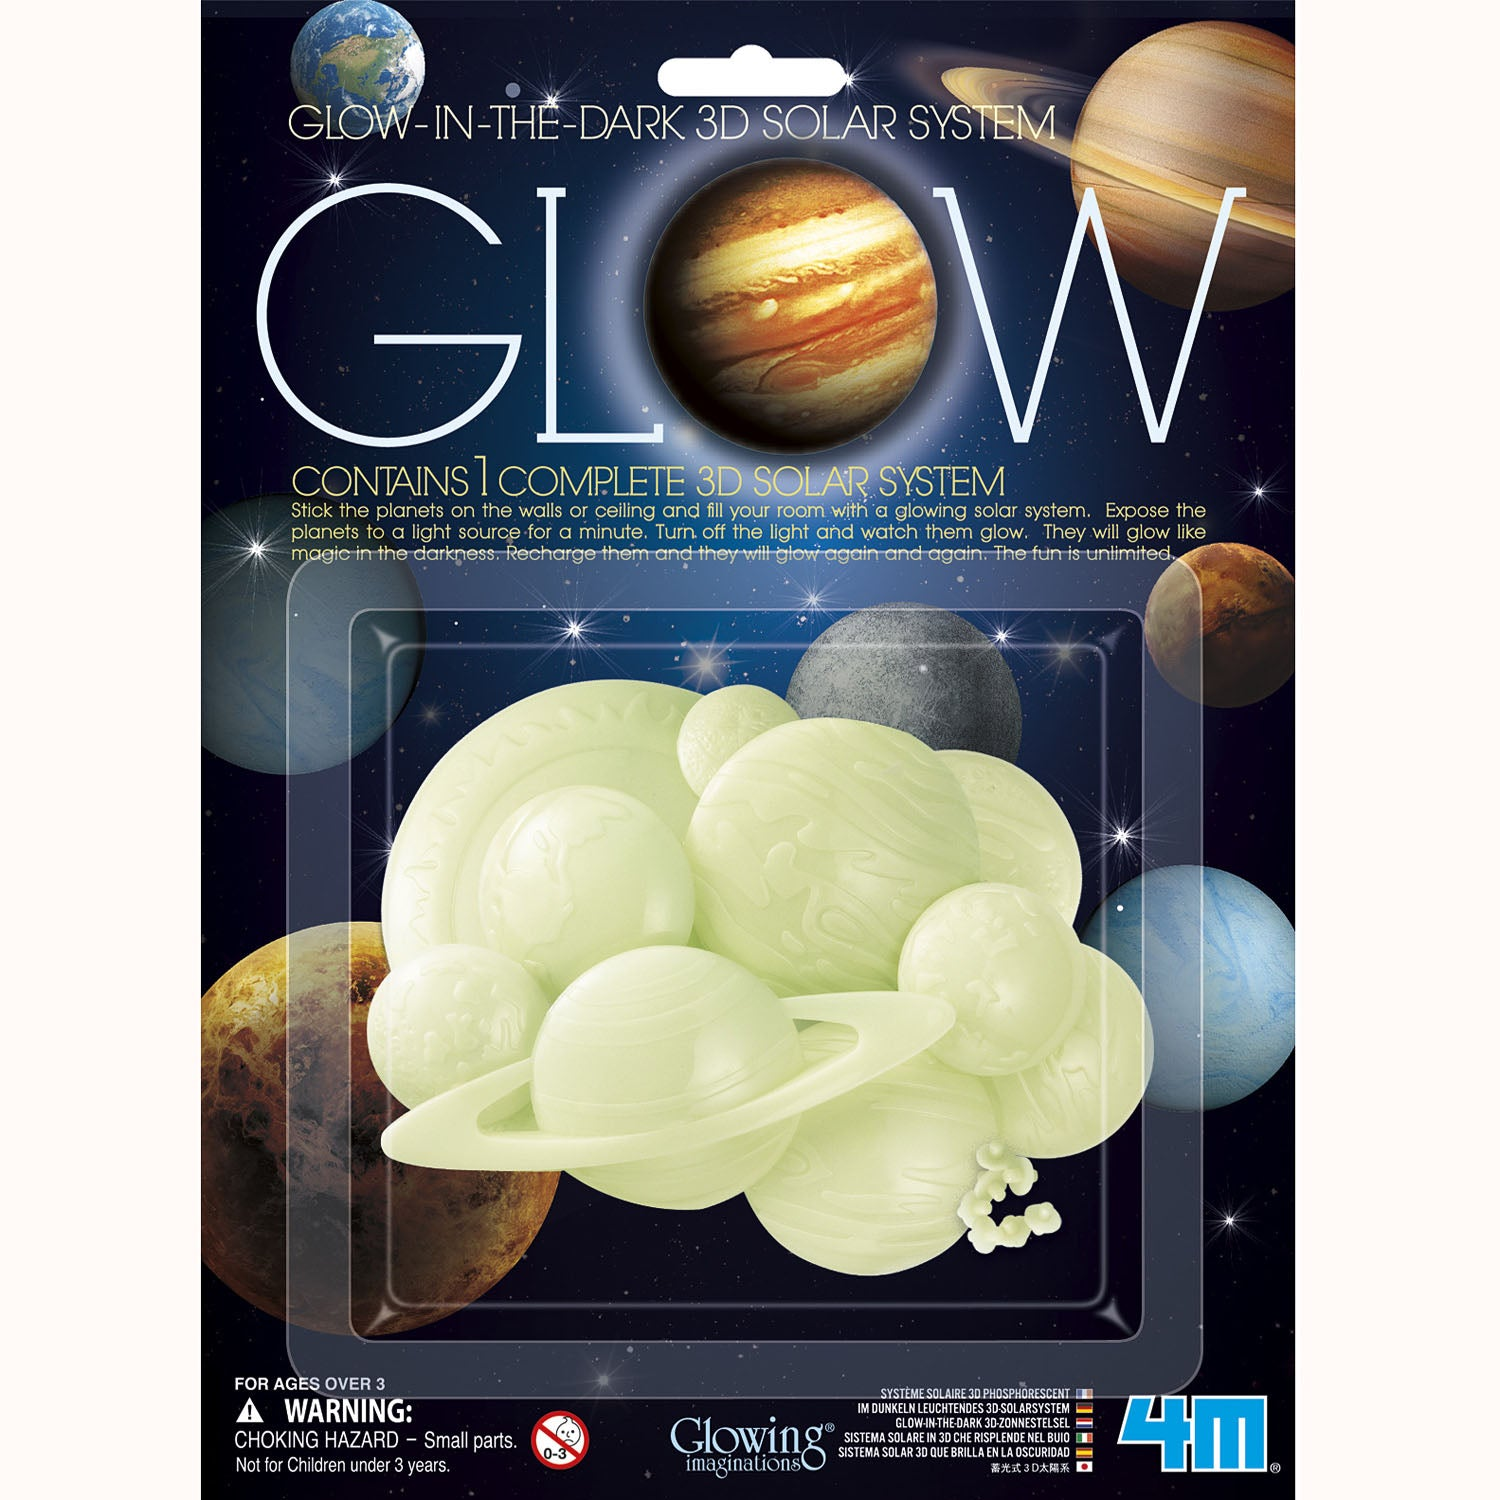 Glow-In-The-Dark 3D Solar System, in packaging